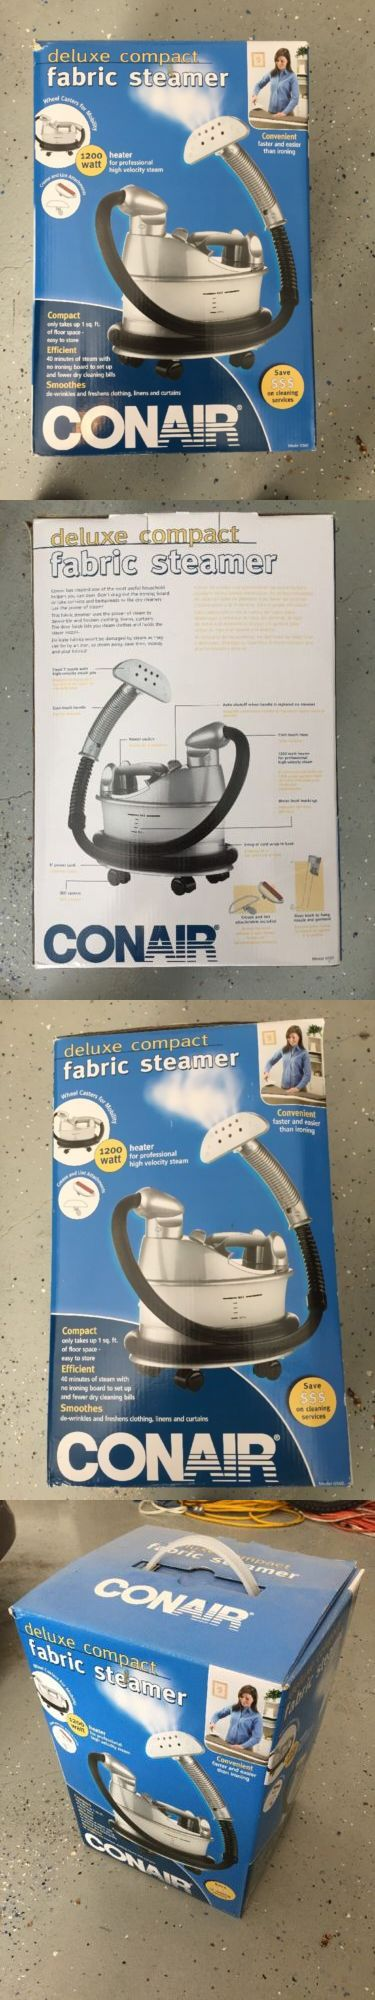 Lint Removers and Lint Shavers 170626: Fabric Steamer Conair Gs60 Deluxe Compact Smooths Wrinkles From Clothing New -> BUY IT NOW ONLY: $69 on eBay!